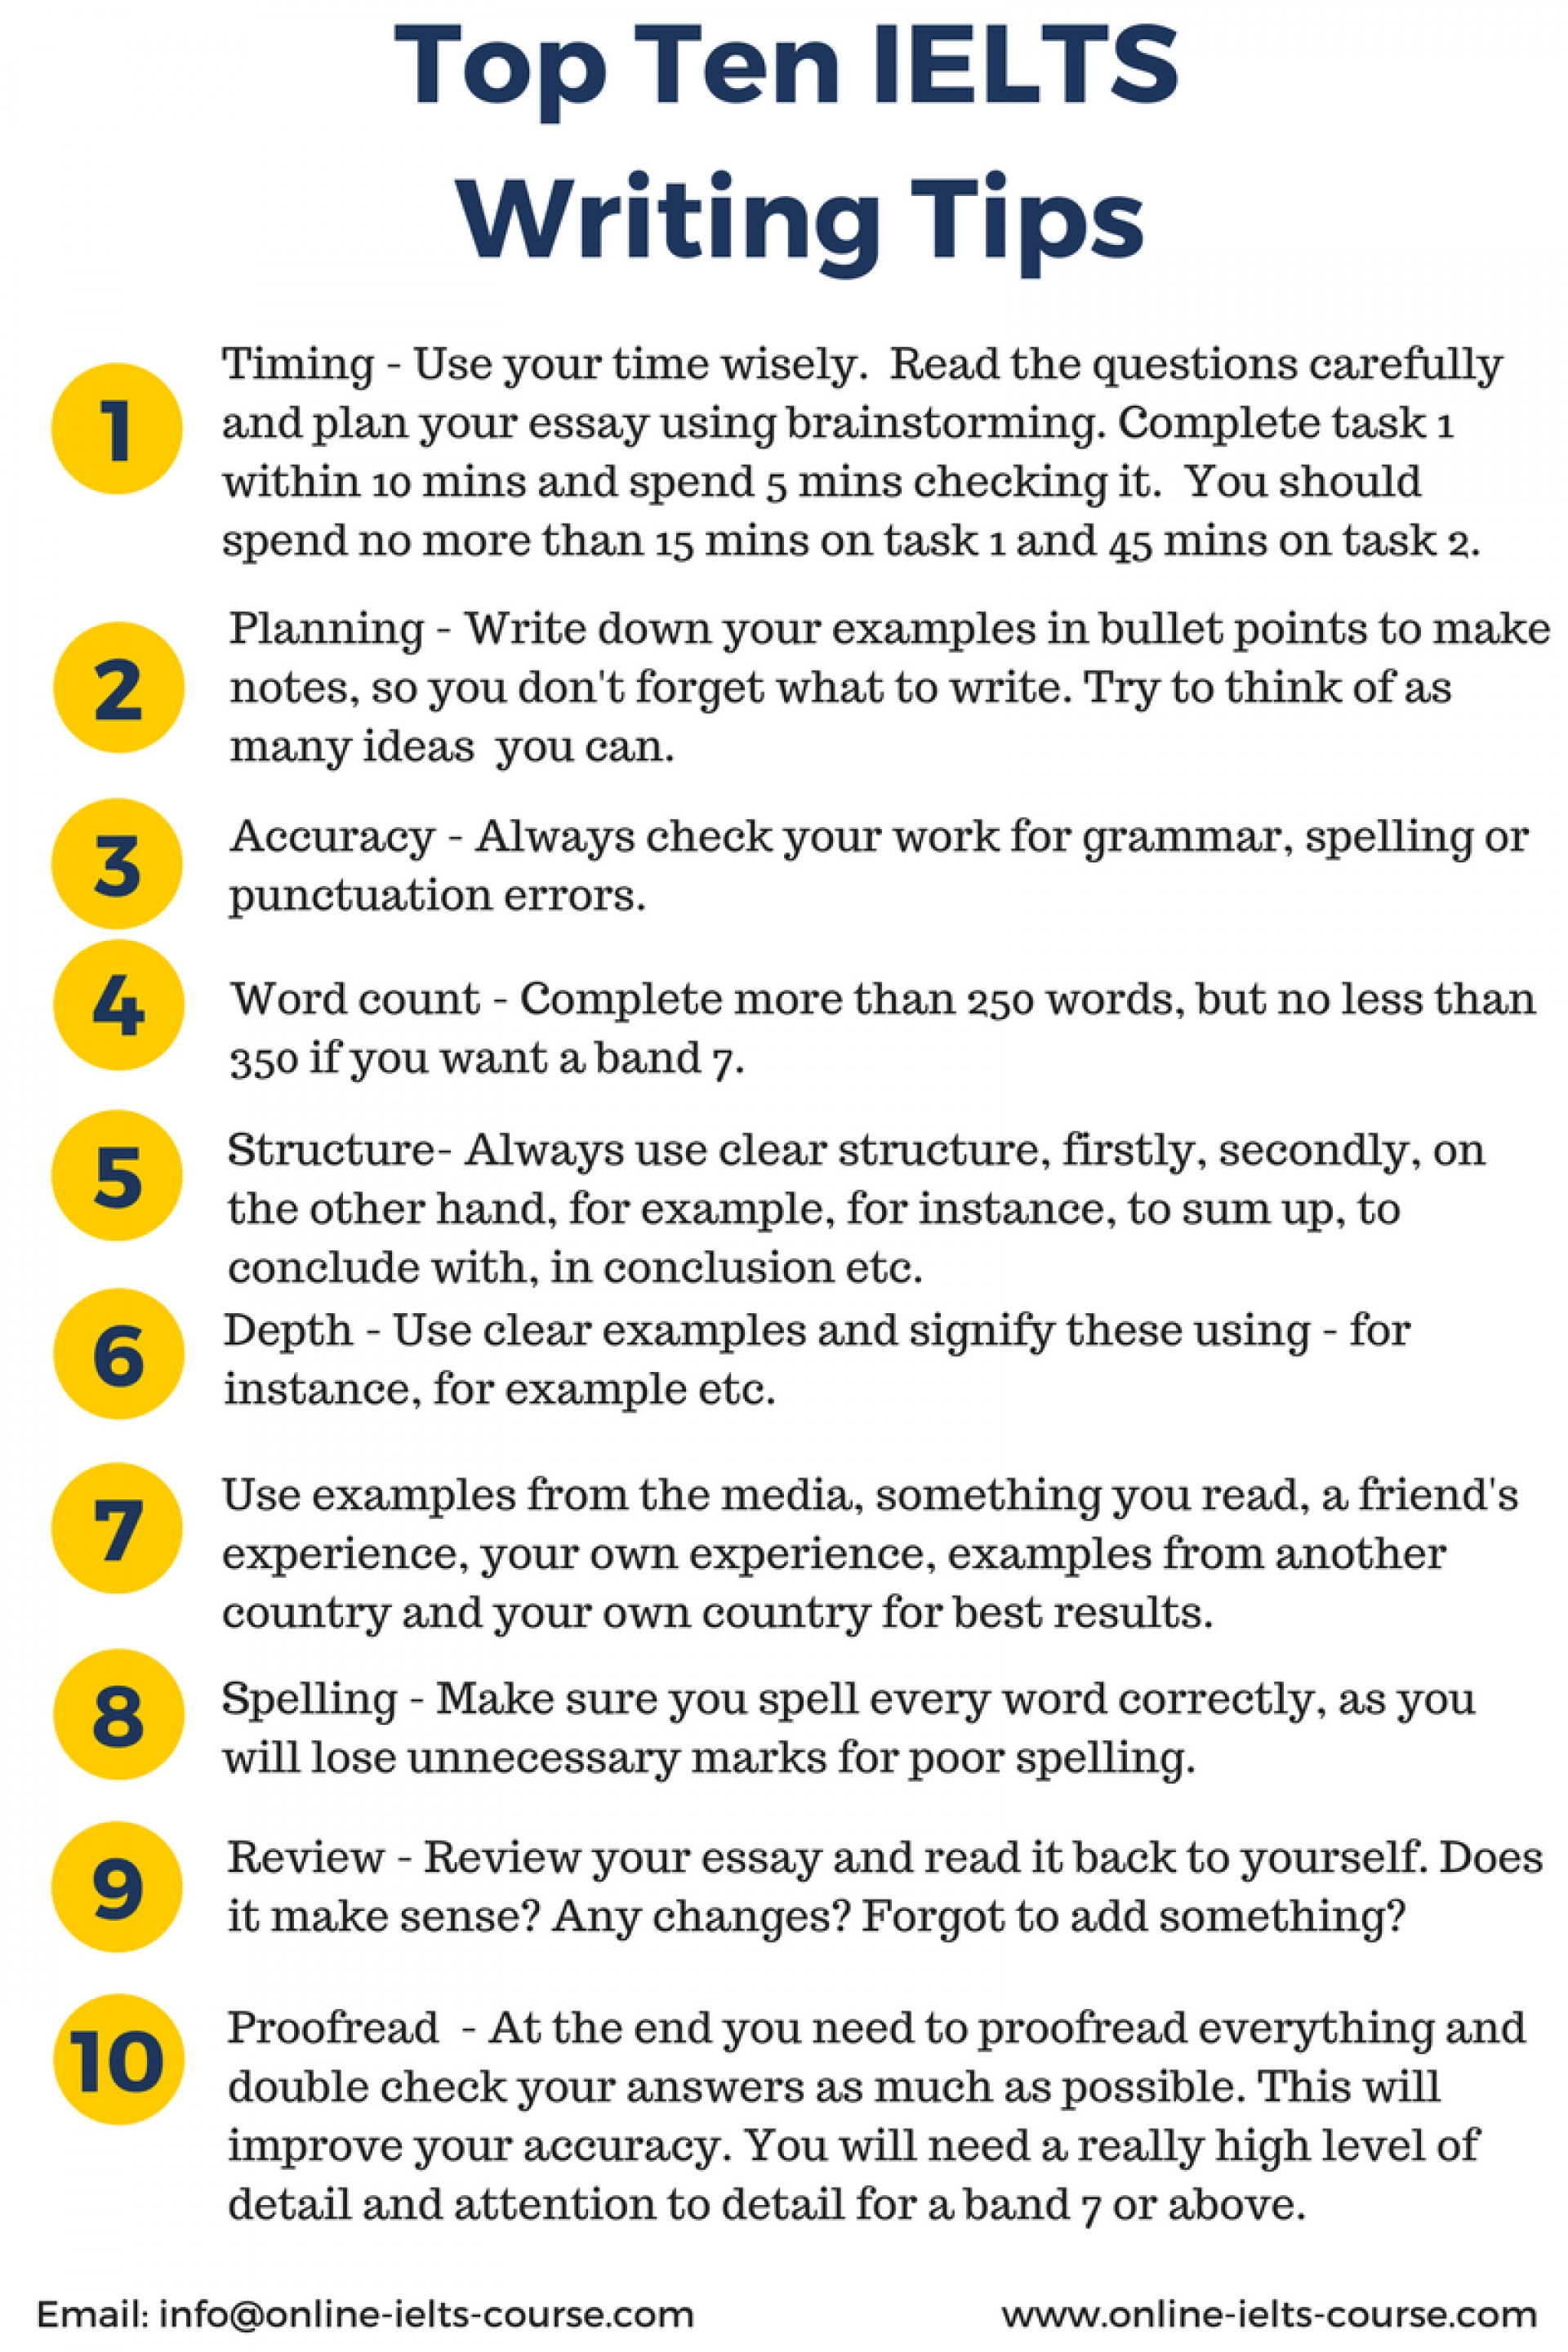 019 Writing An Essay Example Ilets Top Ten Ielts Tips Online Preparation Format C76421 05ba75c064fa4f49bcabc70bde80db General Examples Pdf Band For Training Best Written Essays In Apa College Application Academic Introduction 1920